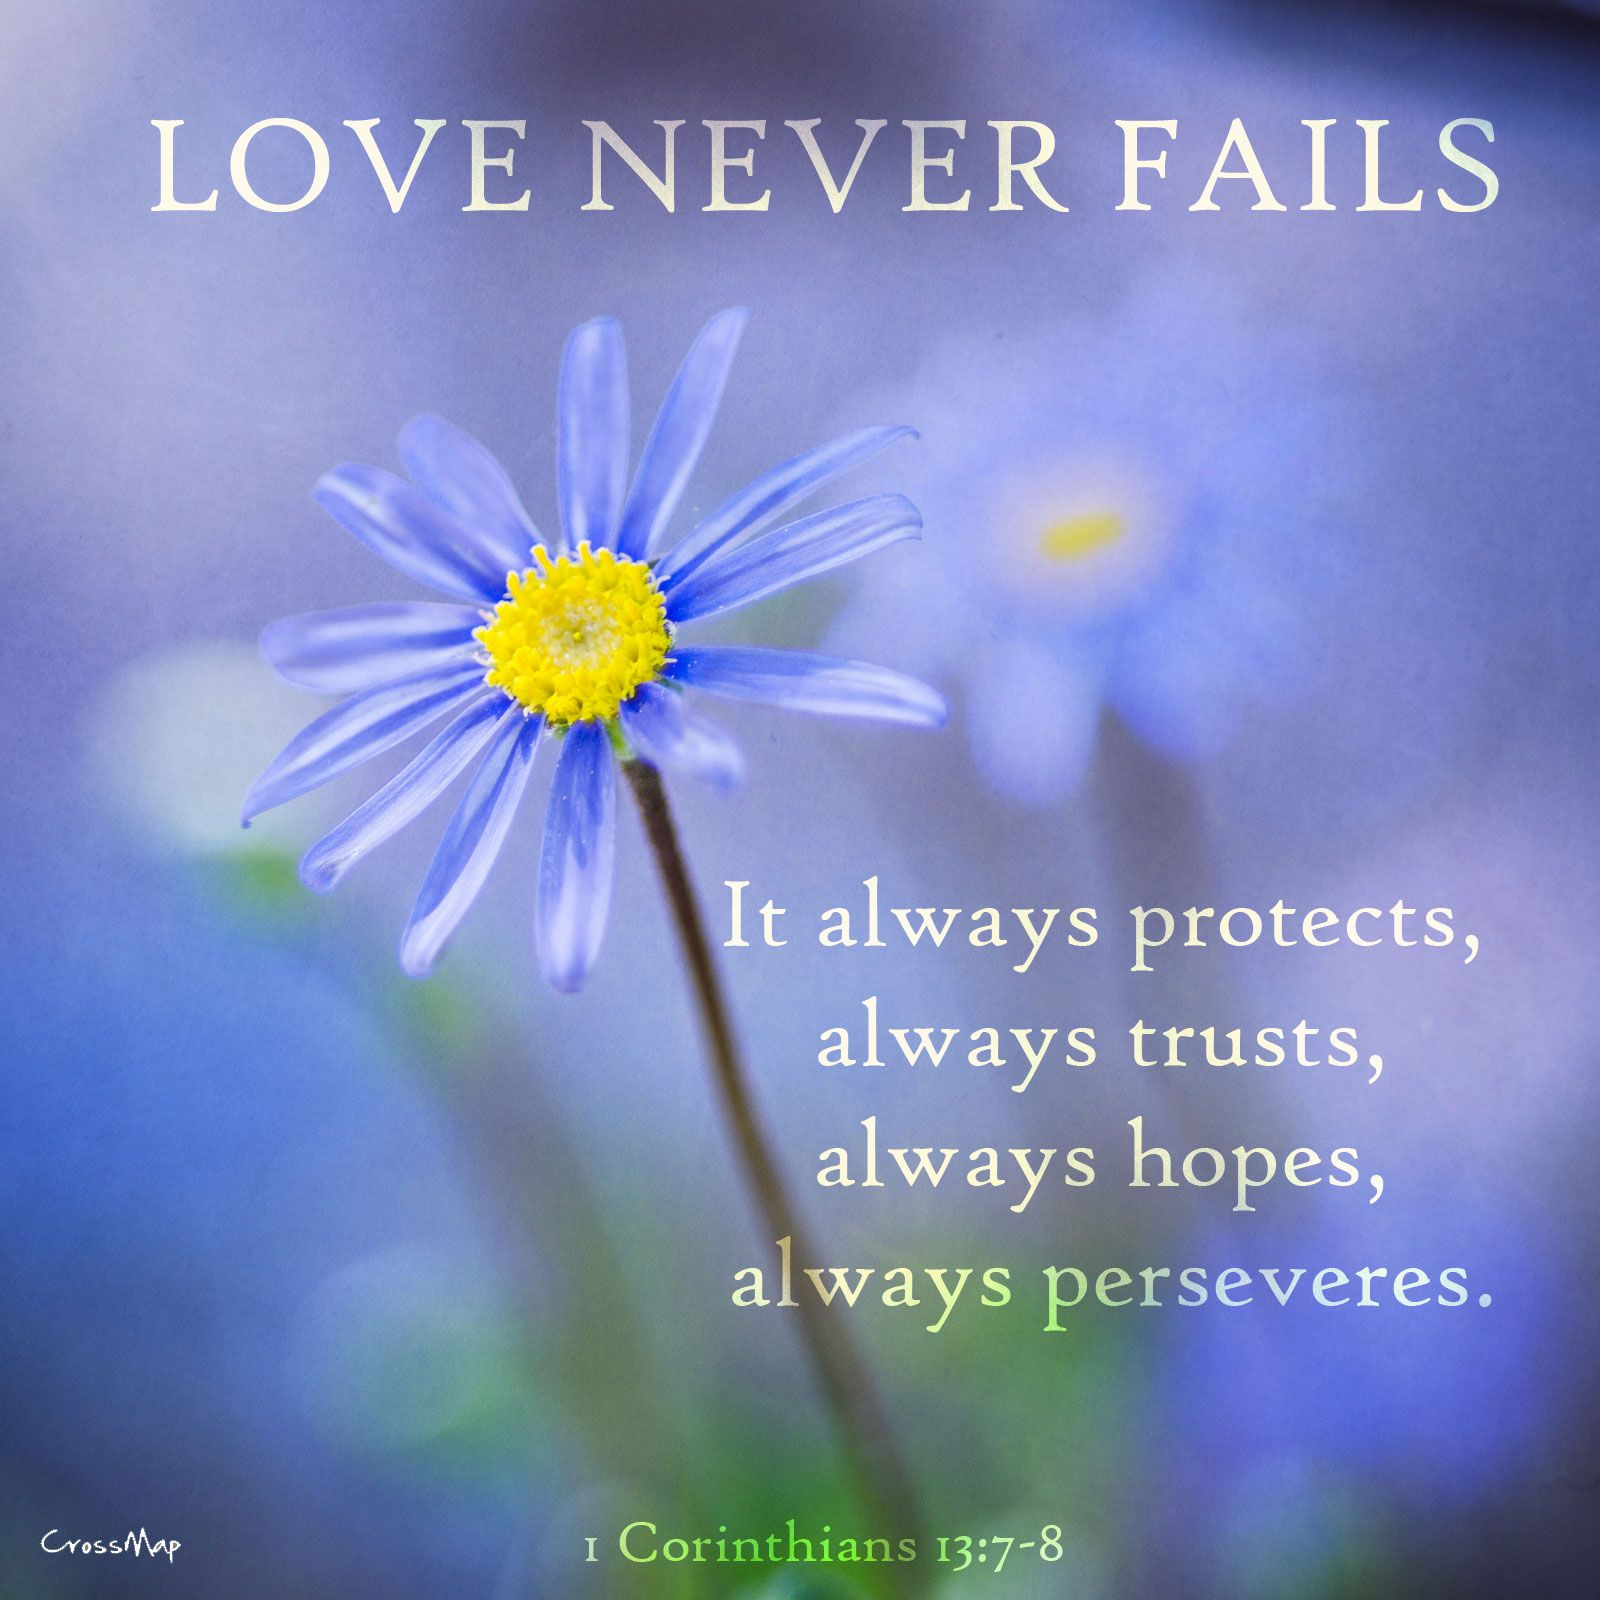 Love never fails It always protects trusts hopes and perseveres I Love the Bible and Jesus Christ Christian Quotes and verses